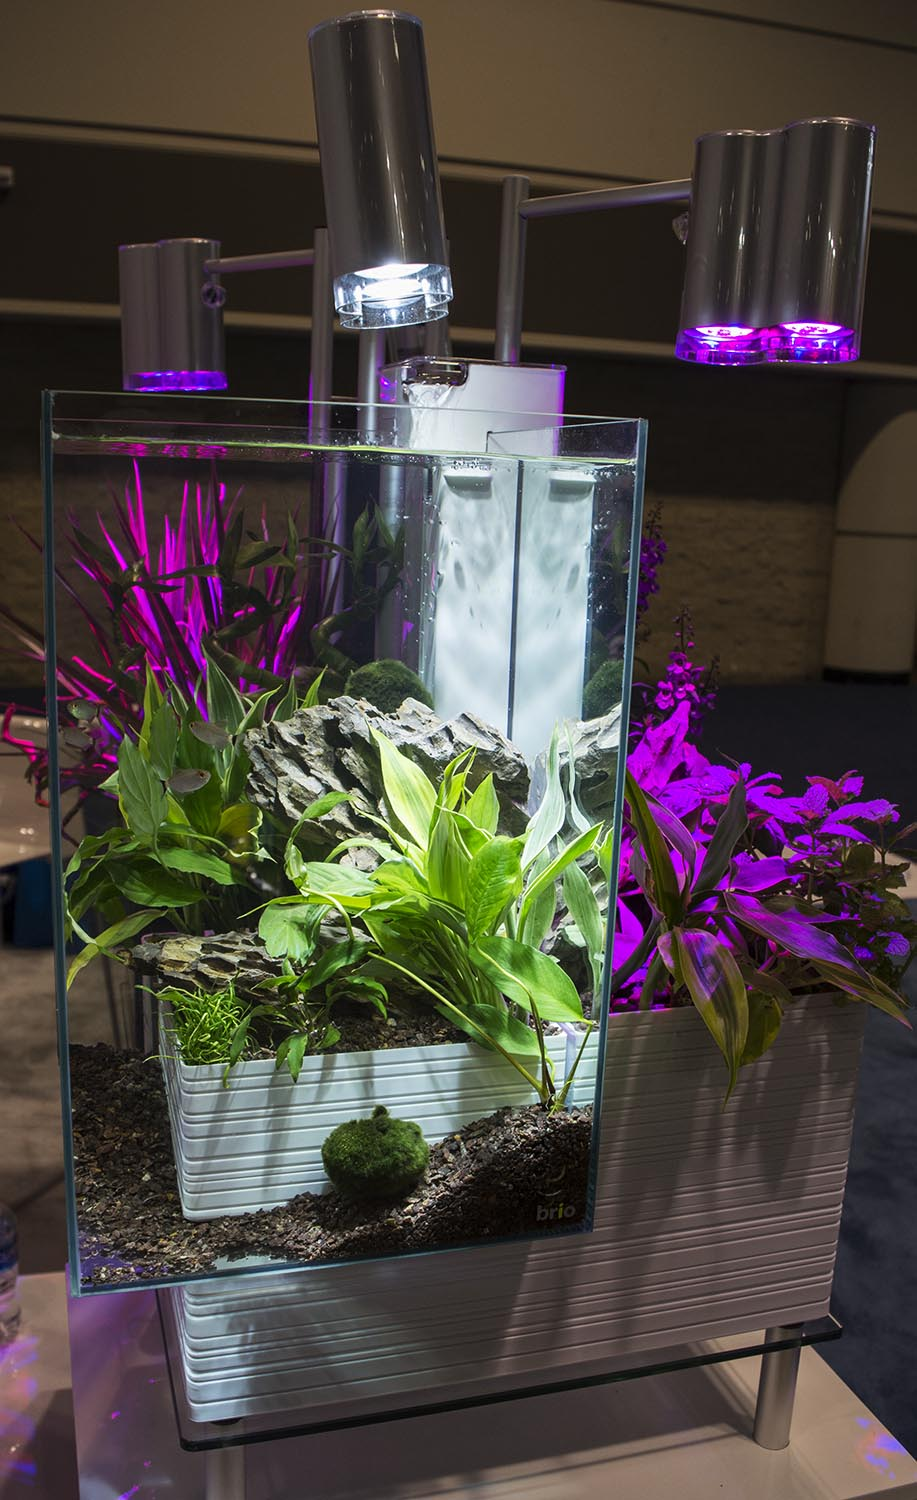 Aquaponics continues to make its crossover into the aquarium hobby, and the new Brio kit seems like a well-designed, functional, and stylish entry-level setup.